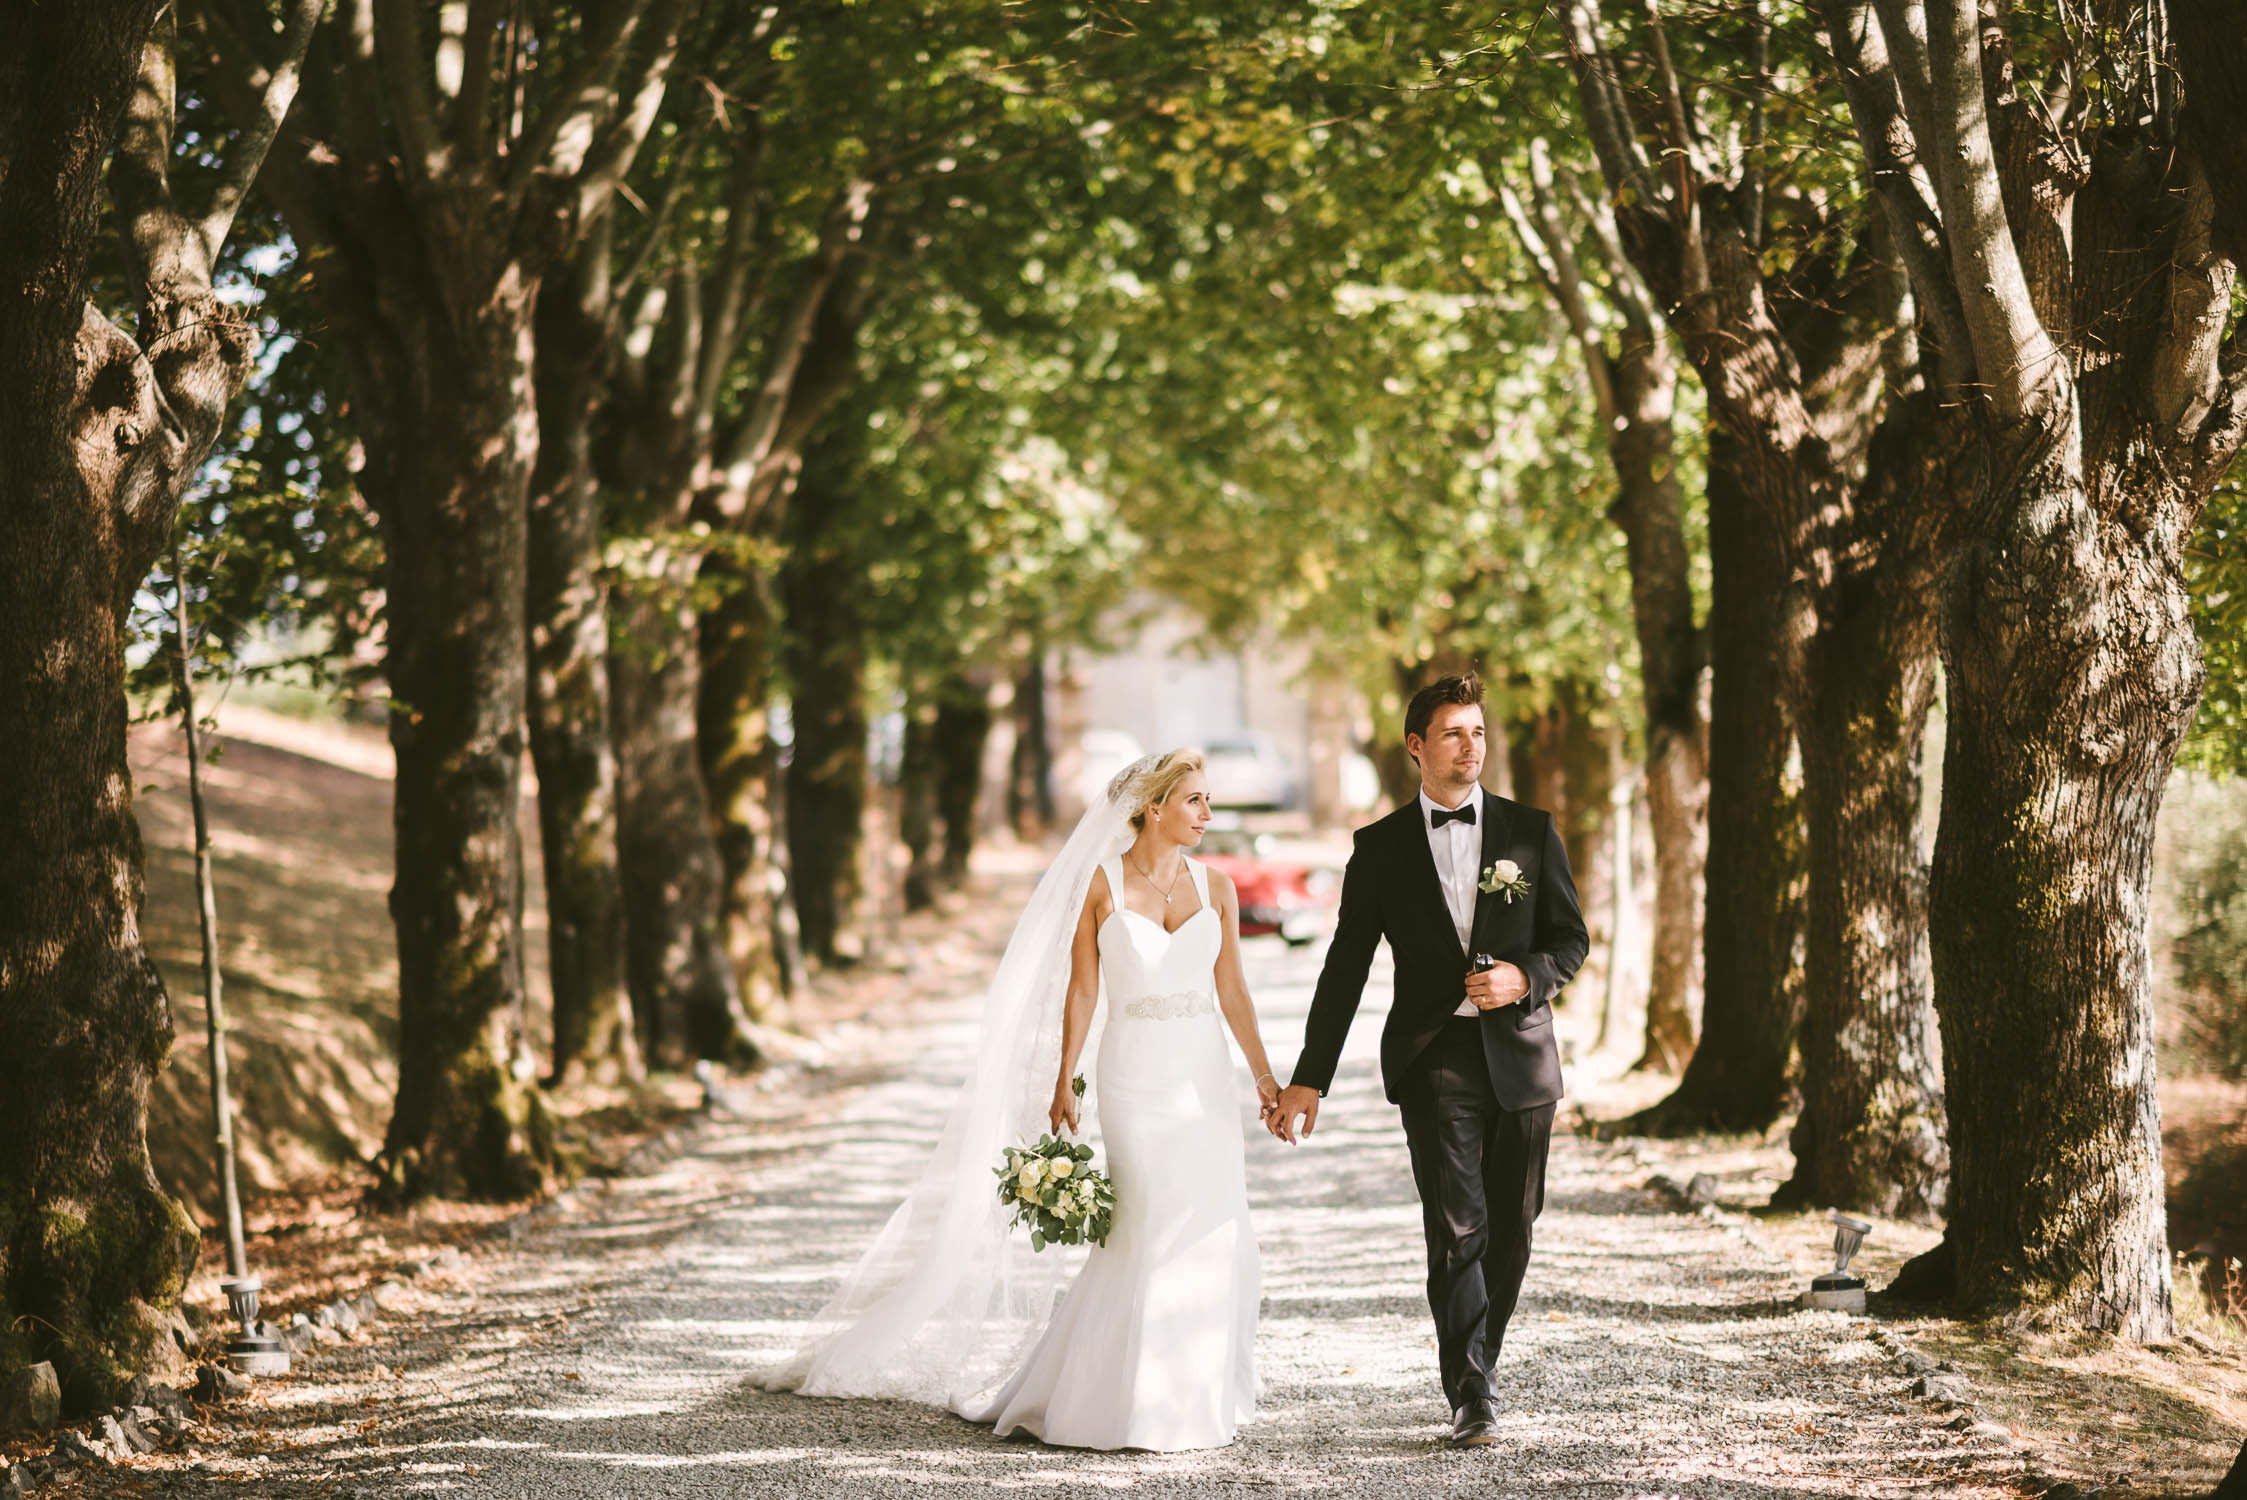 Bride and groom walk into the lovely street of Borgo di Colleoli into the Tuscany countryside